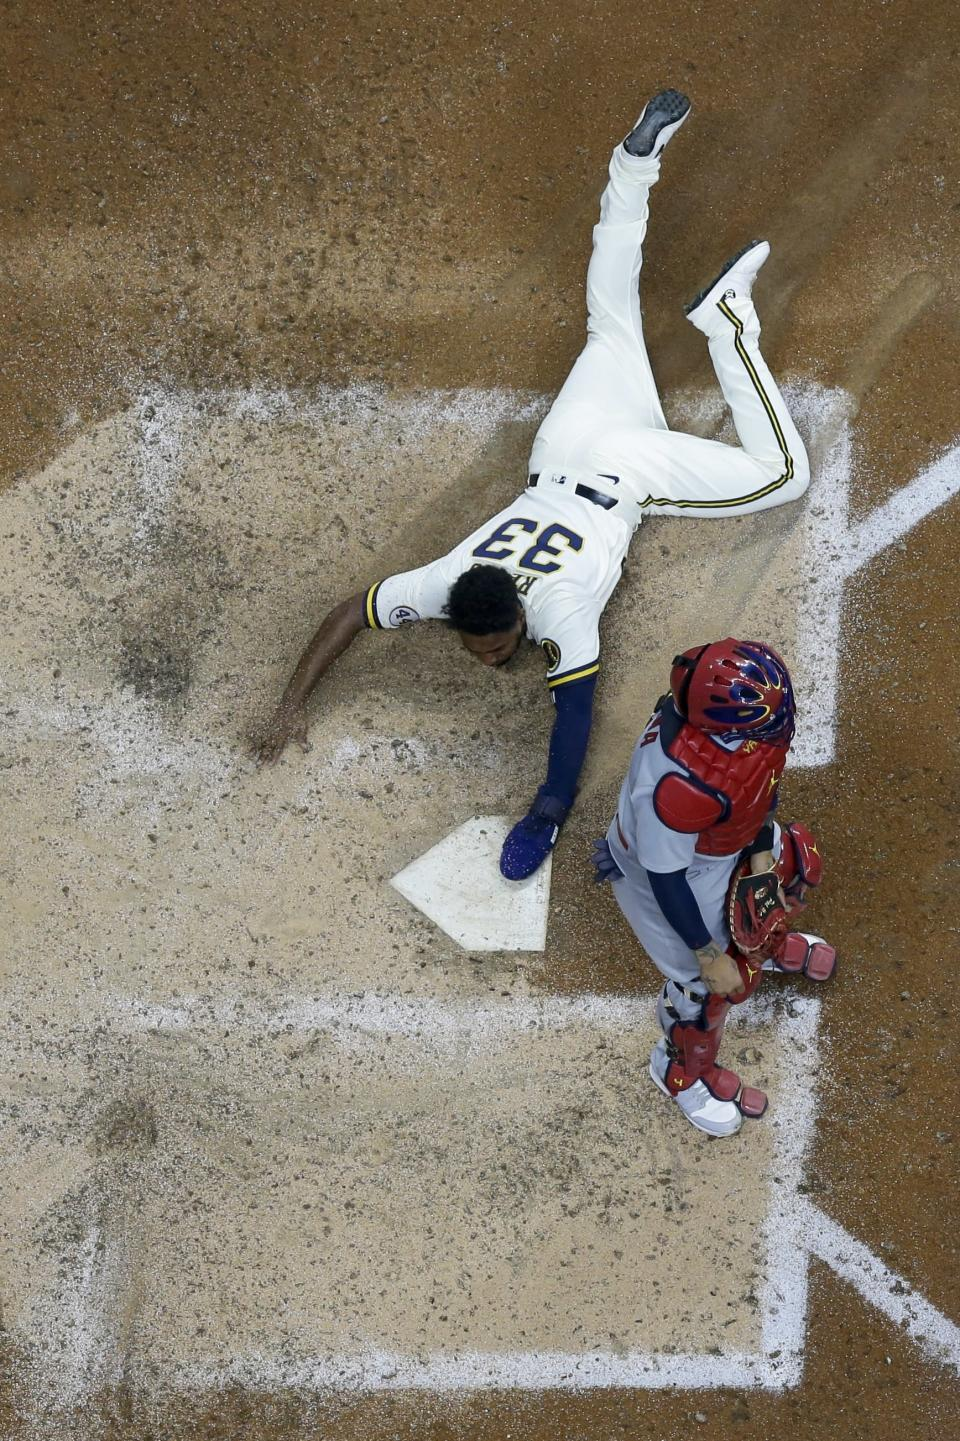 Milwaukee Brewers' Pablo Reyes scores past St. Louis Cardinals catcher Yadier Molina during the eighth inning of a baseball game Wednesday, May 12, 2021, in Milwaukee. Reyes scored from first on a double by Travis Shaw. (AP Photo/Morry Gash)